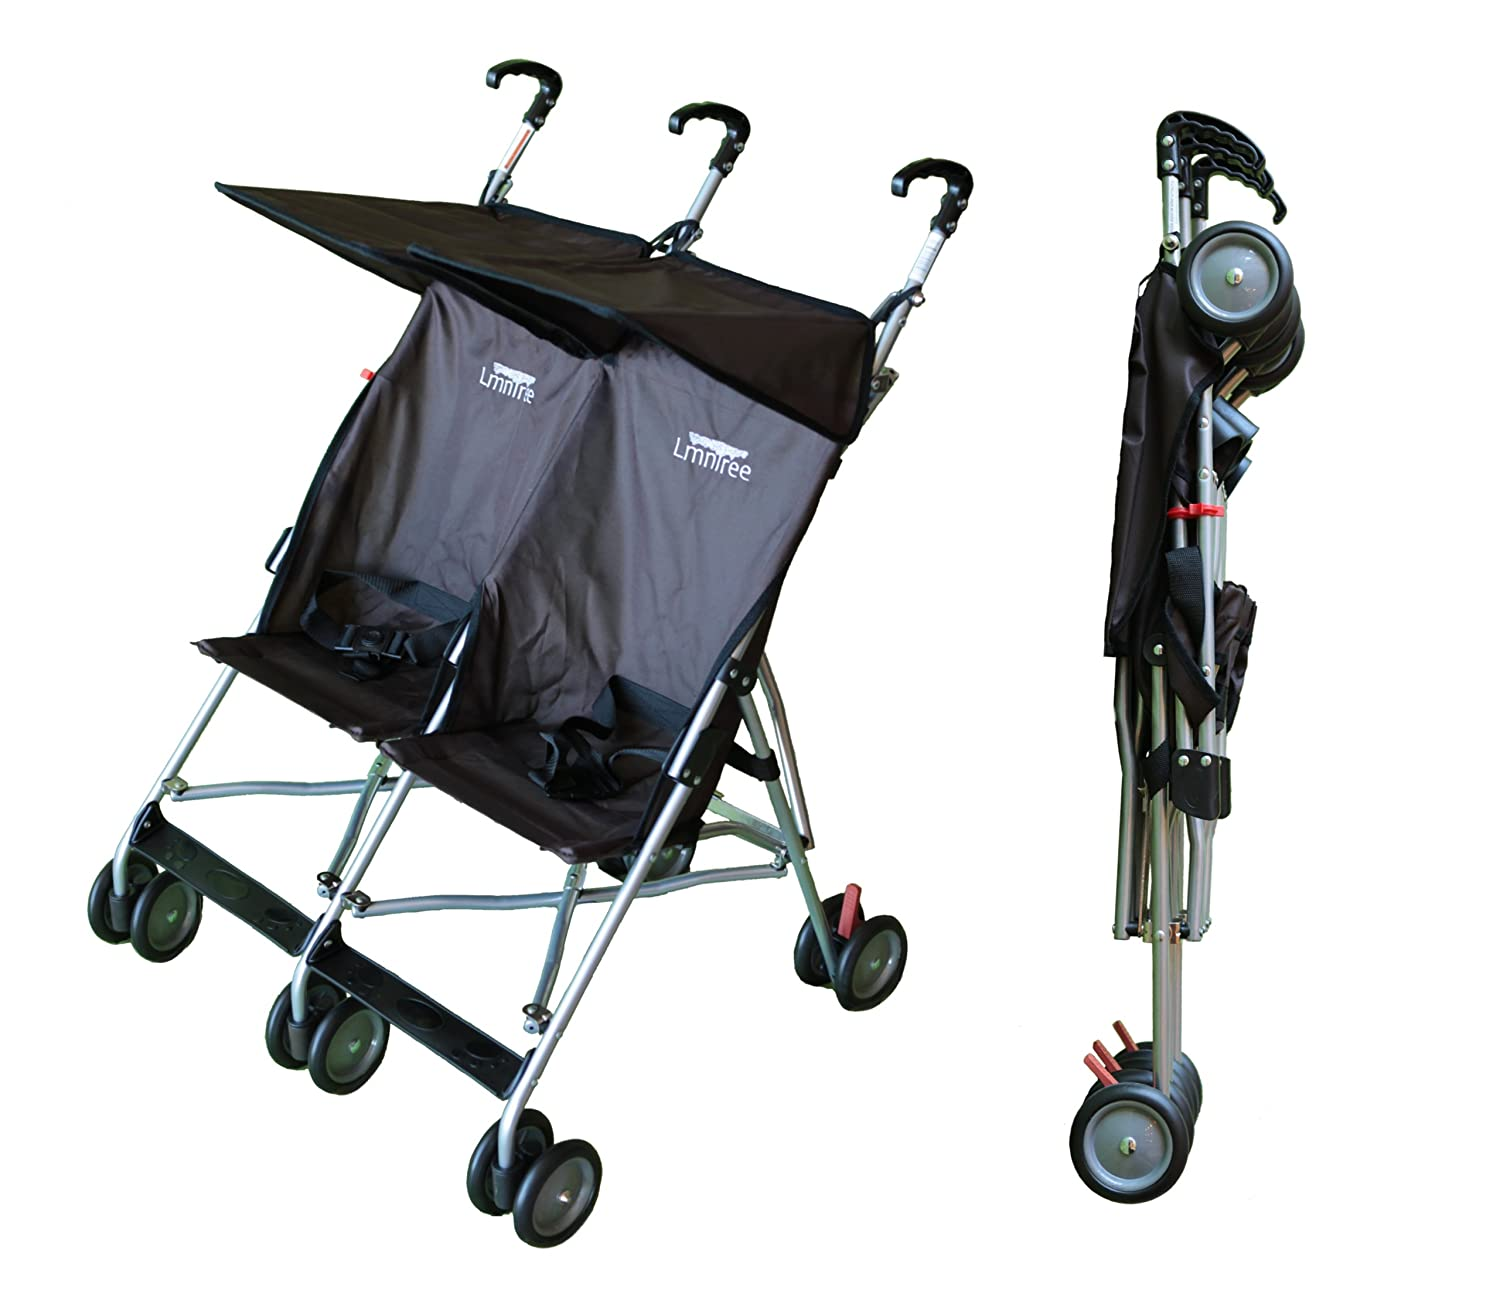 Lmntree Lightweight Double Umbrella Stroller